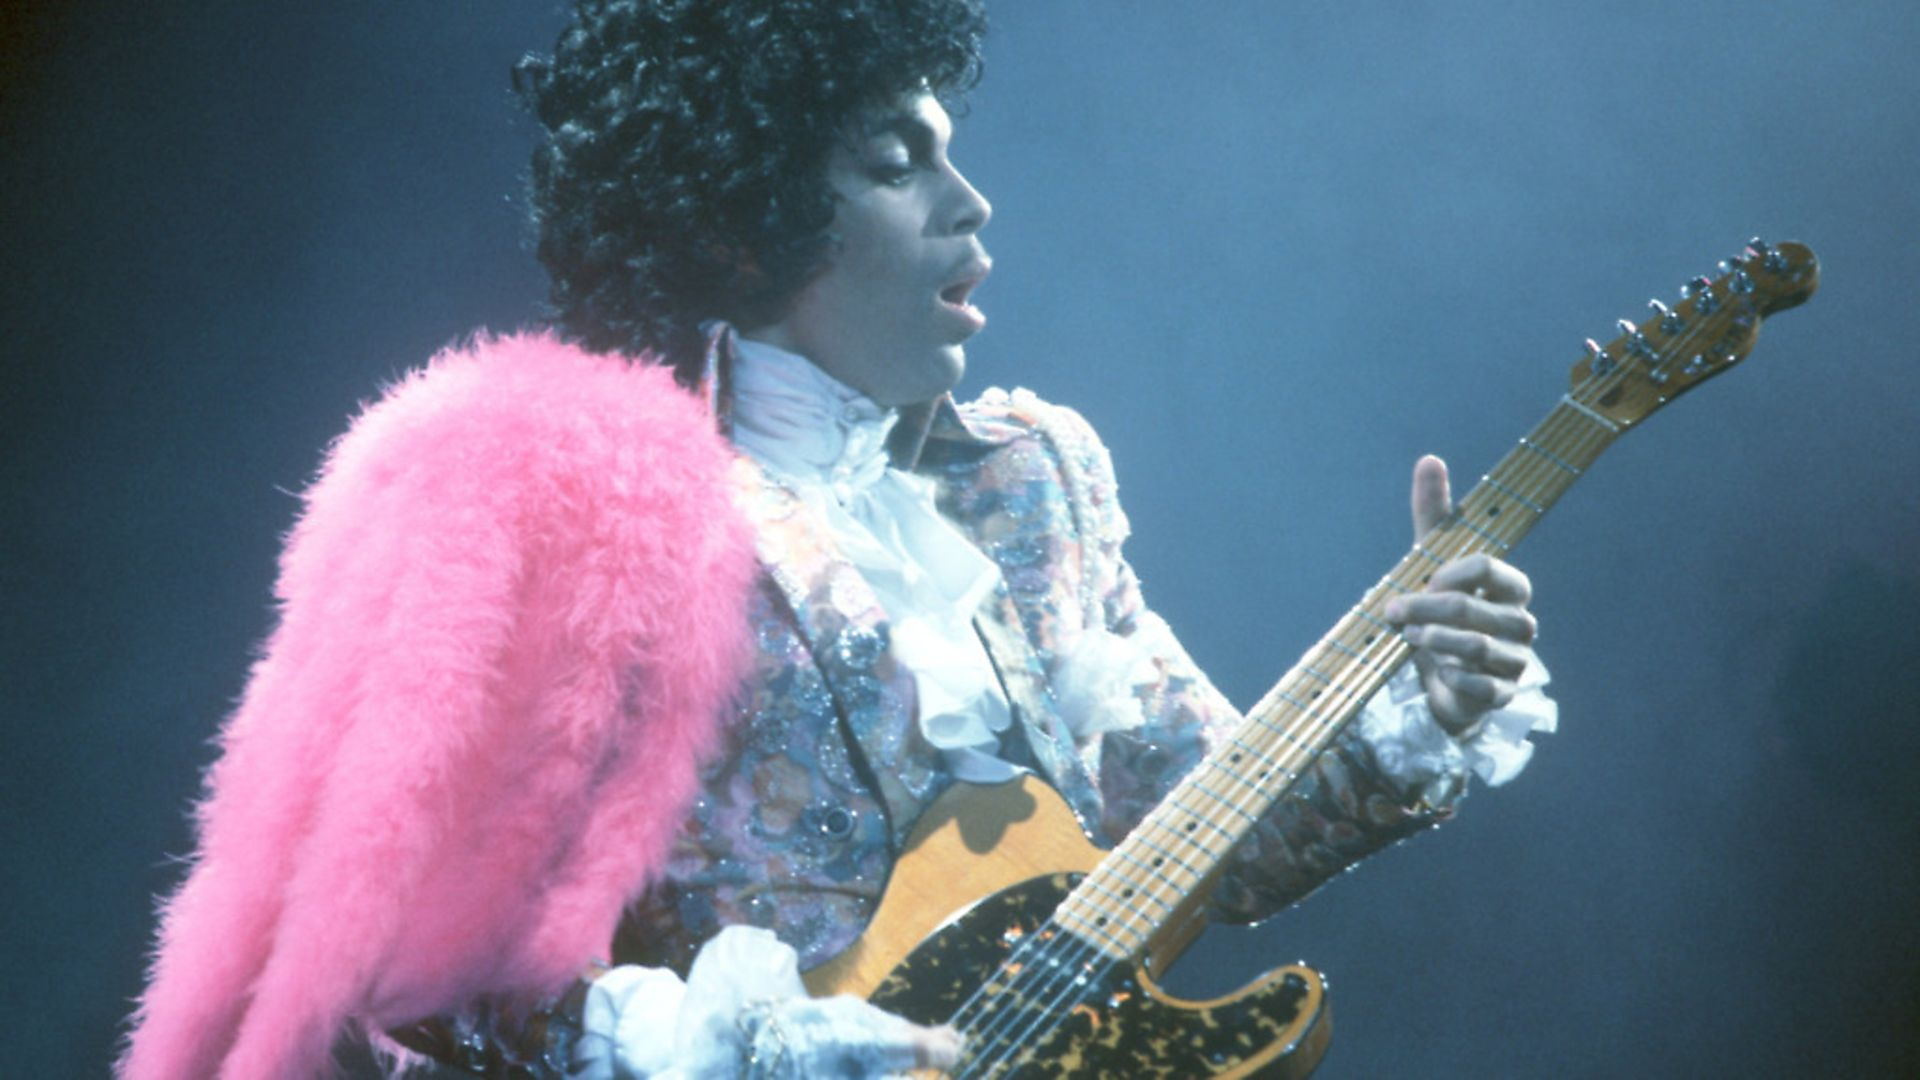 Prince performs live at the Fabulous Forum on February 19 in California. Photo Michael Montfort/Michael Ochs Archives/Getty Images - Credit: Archant